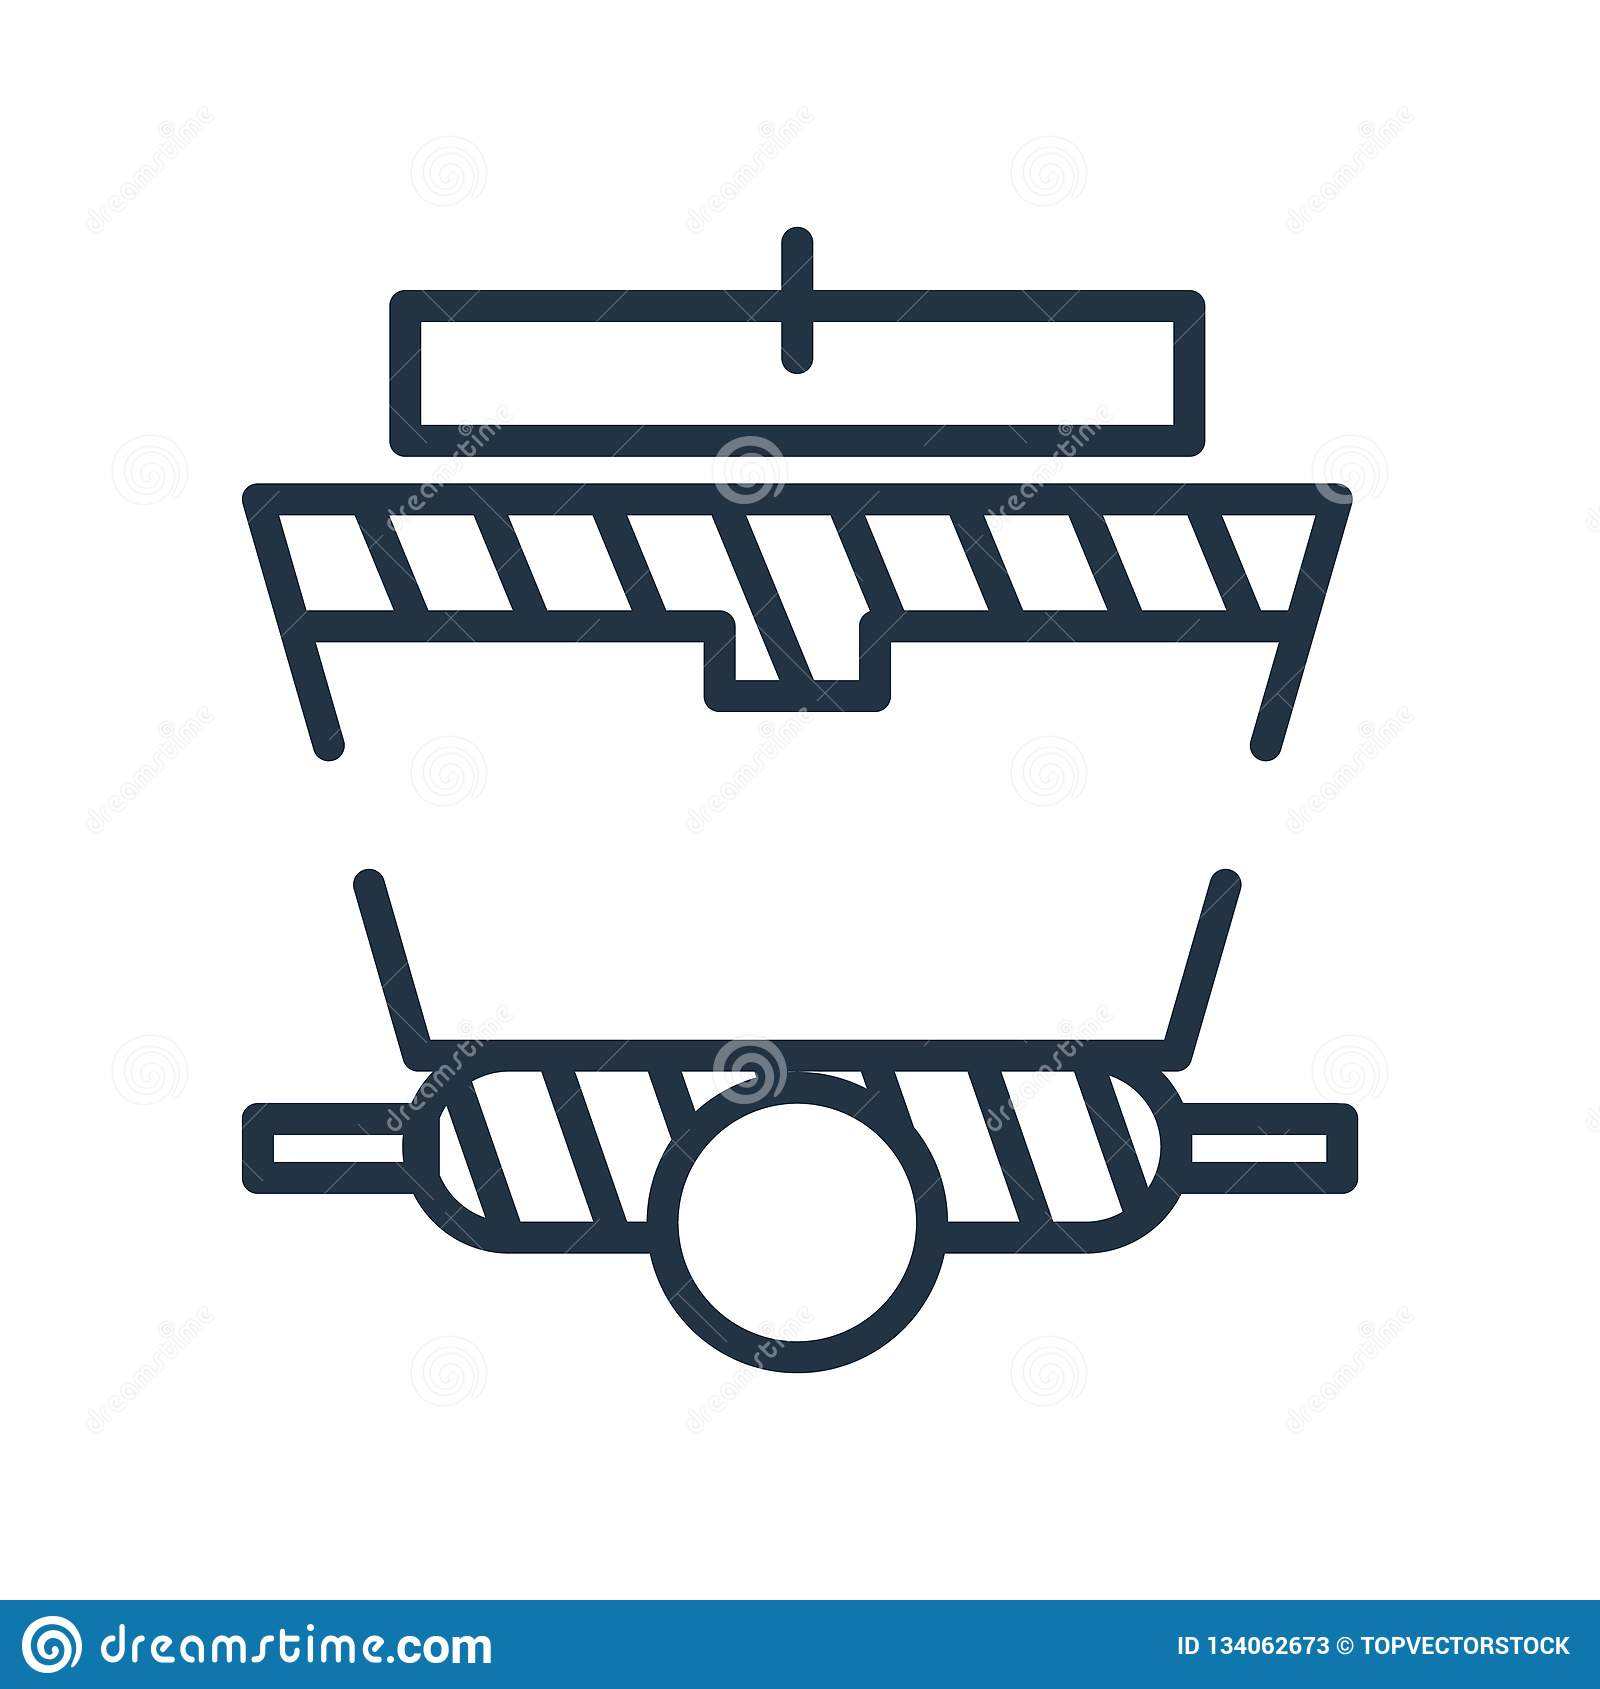 Wagon icon vector isolated on white background, Wagon sign